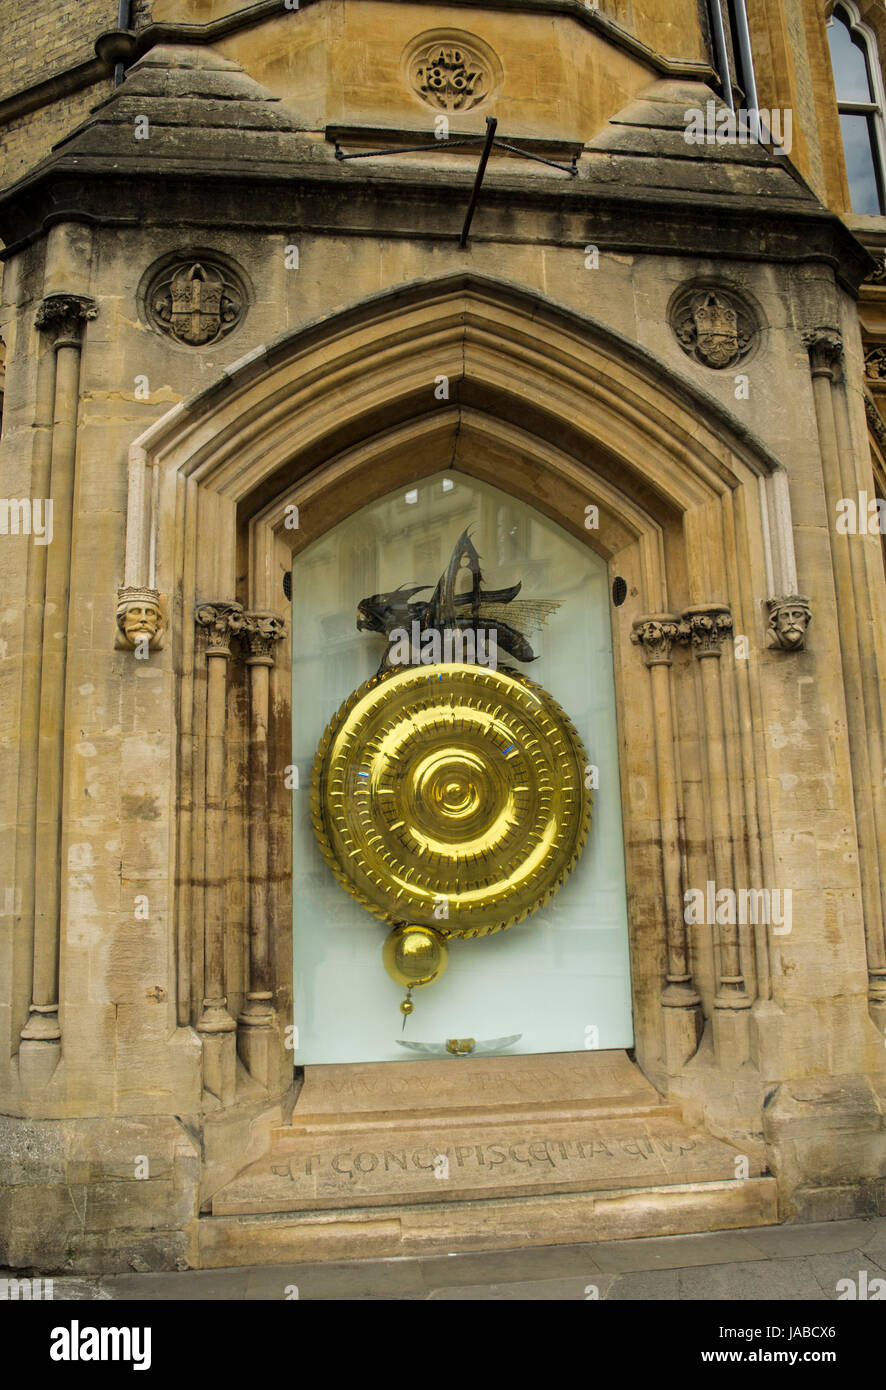 The Corpus Clock. A large sculptural clock at street level on the outside of the Taylor Library at Corpus Christi Stock Photo